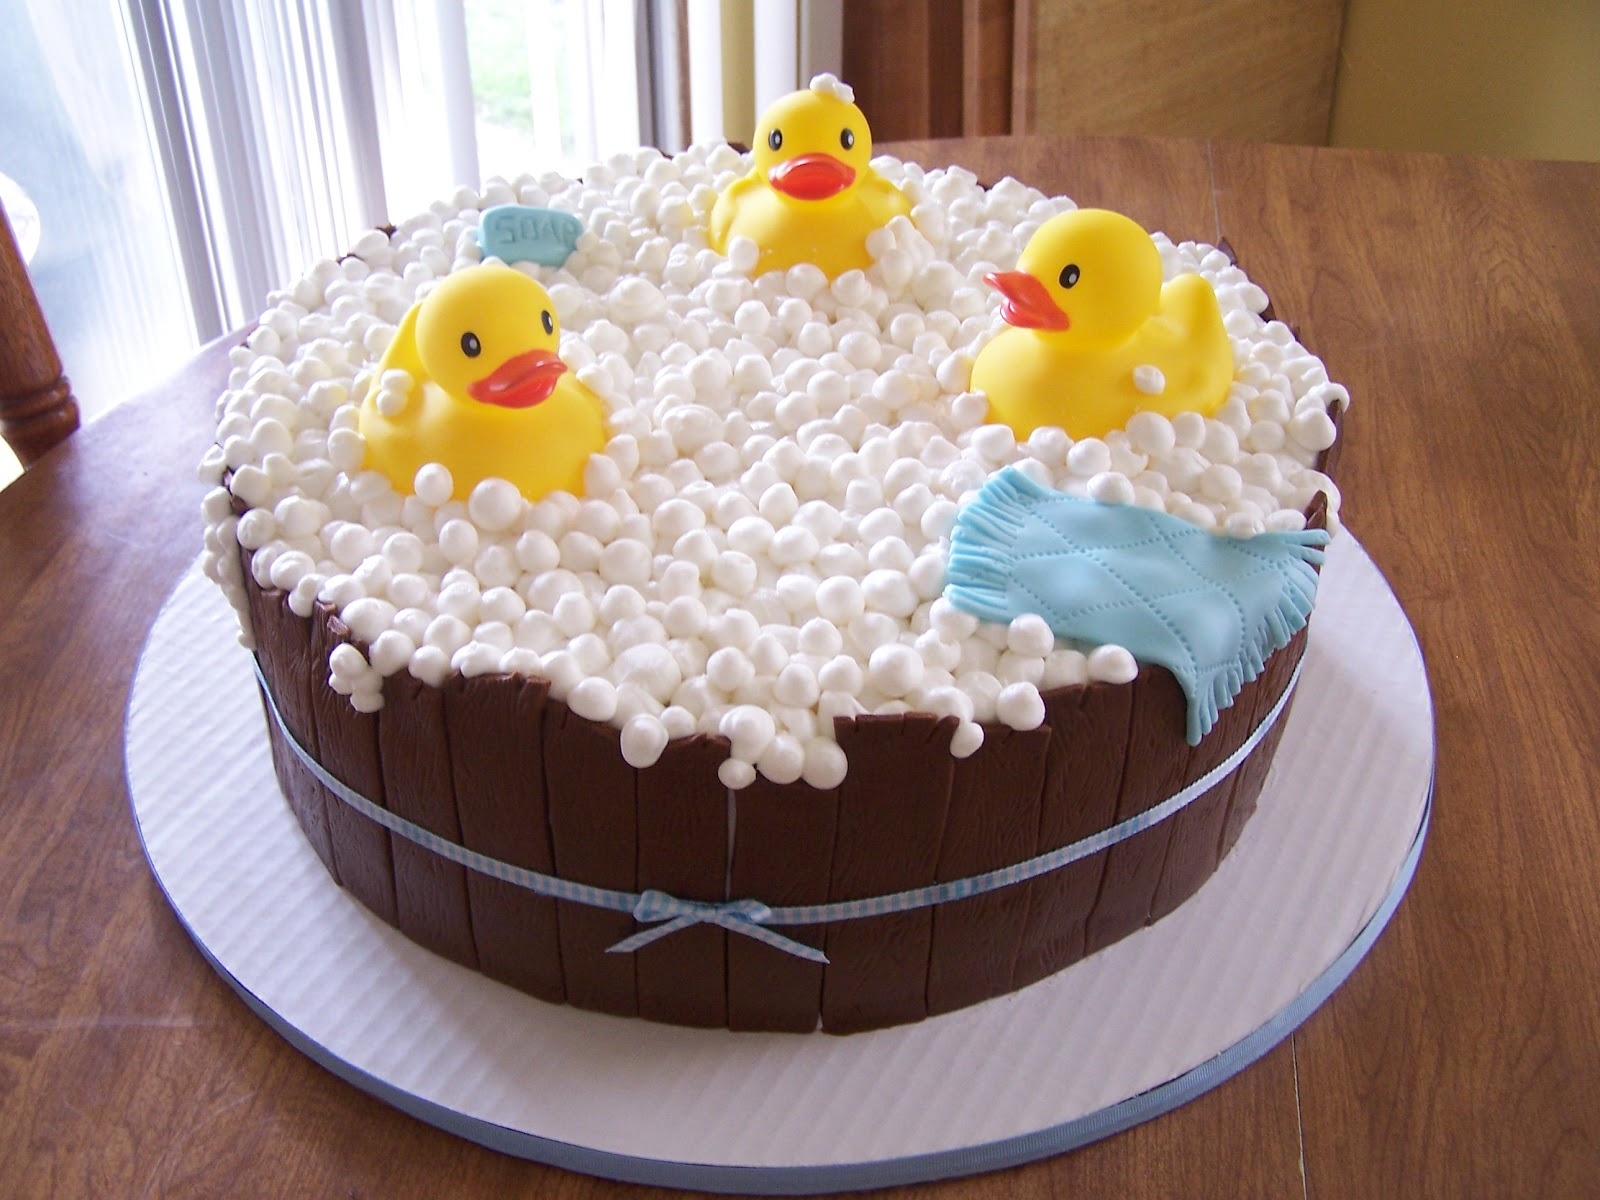 Rubber Duck Baby Shower Cakes http://edees-cakes.blogspot.com/2012/05/boy-rubber-ducky-baby-shower.html